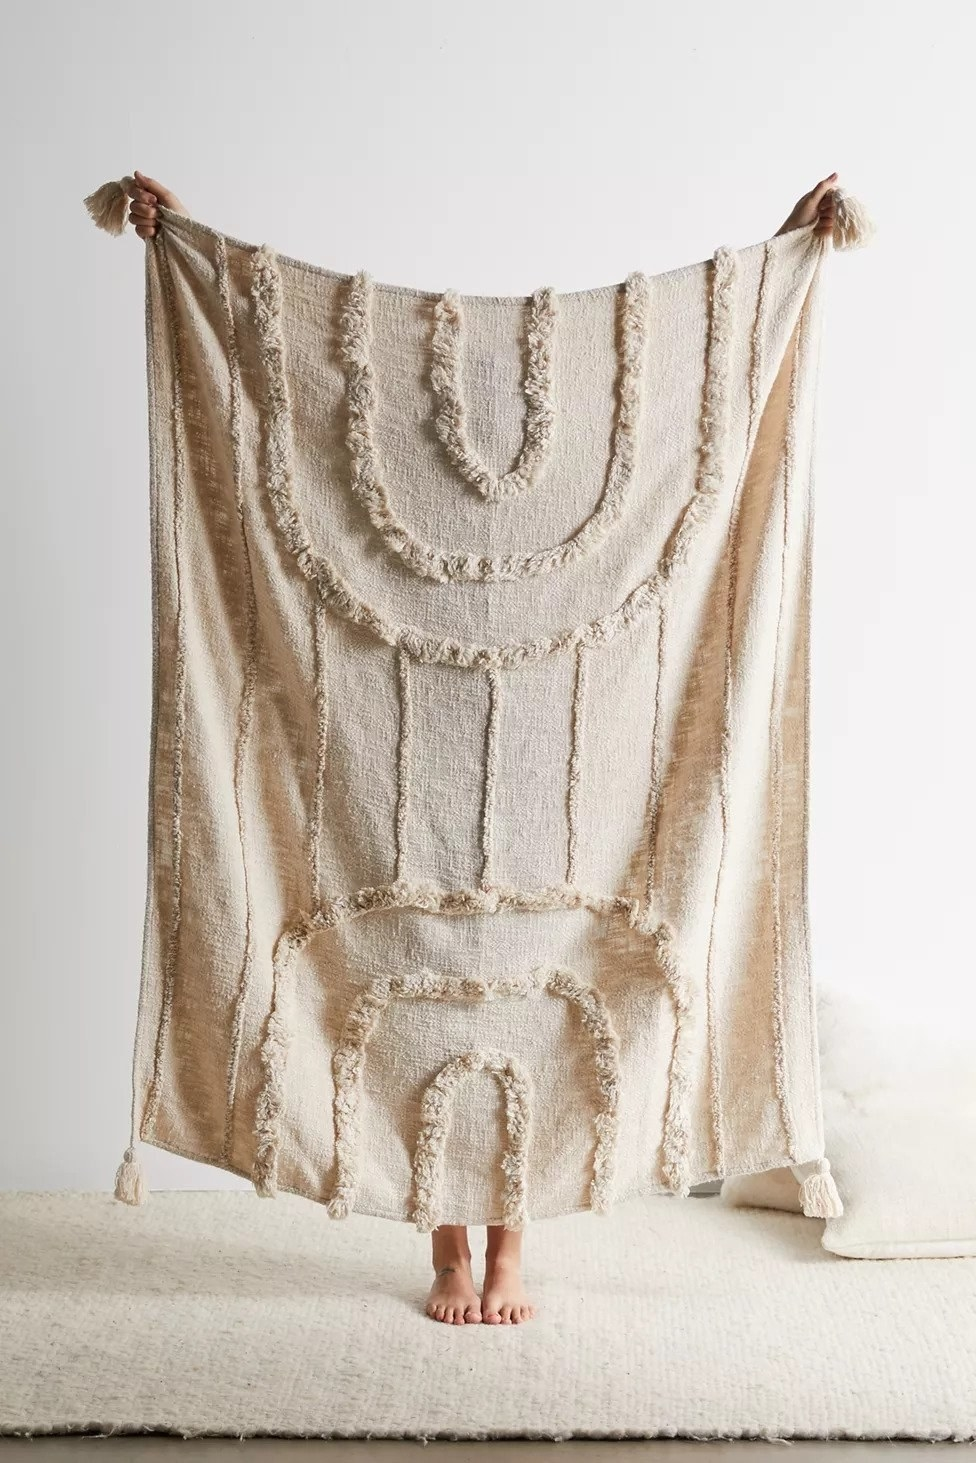 person holding up a beige blanket with tassels and tufted arches on either end